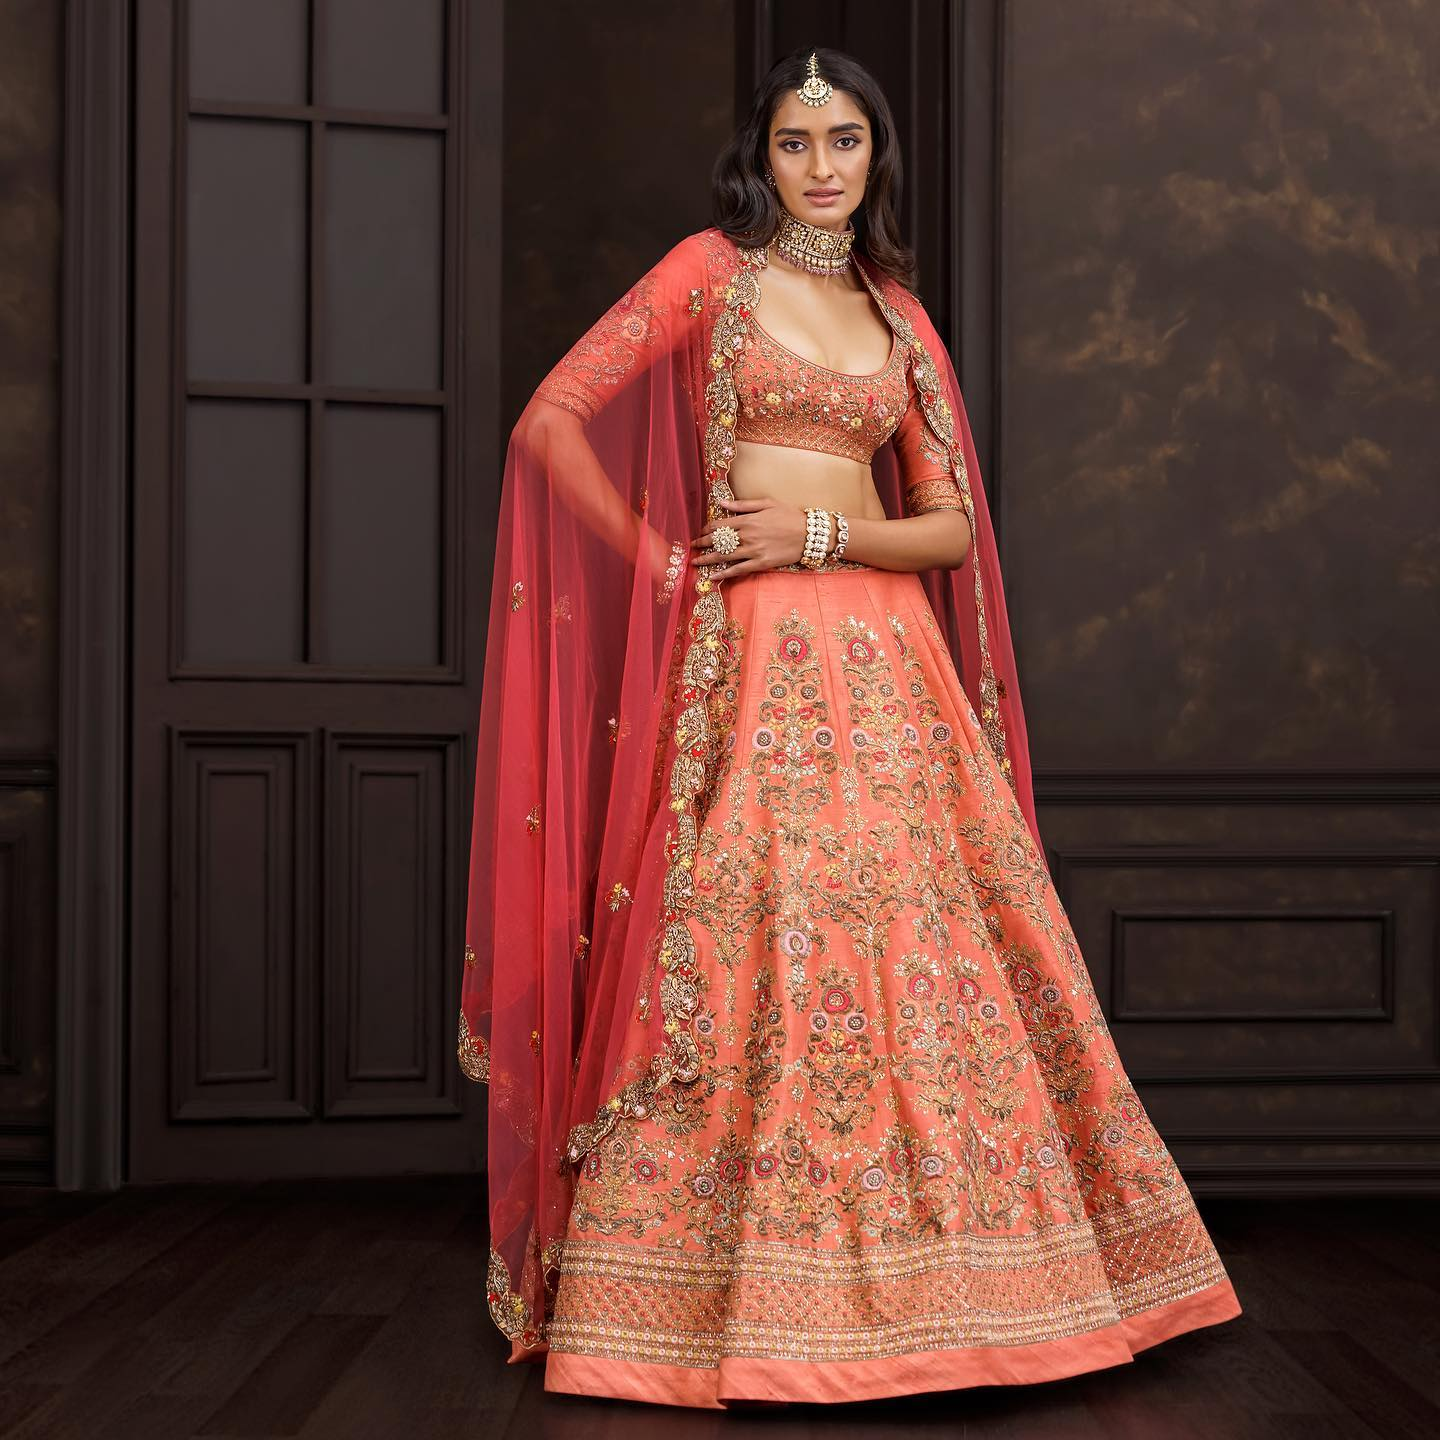 A classic sandstone peach panelled lehenga in raw silk with floral bouquets embroidered in vintage gold zardosi & contrast resham. . Wedding Couture 21-22 Shyamal and Bhumika . Kindly WhatsApp on +91 9833520520 for more information. 2021-10-15